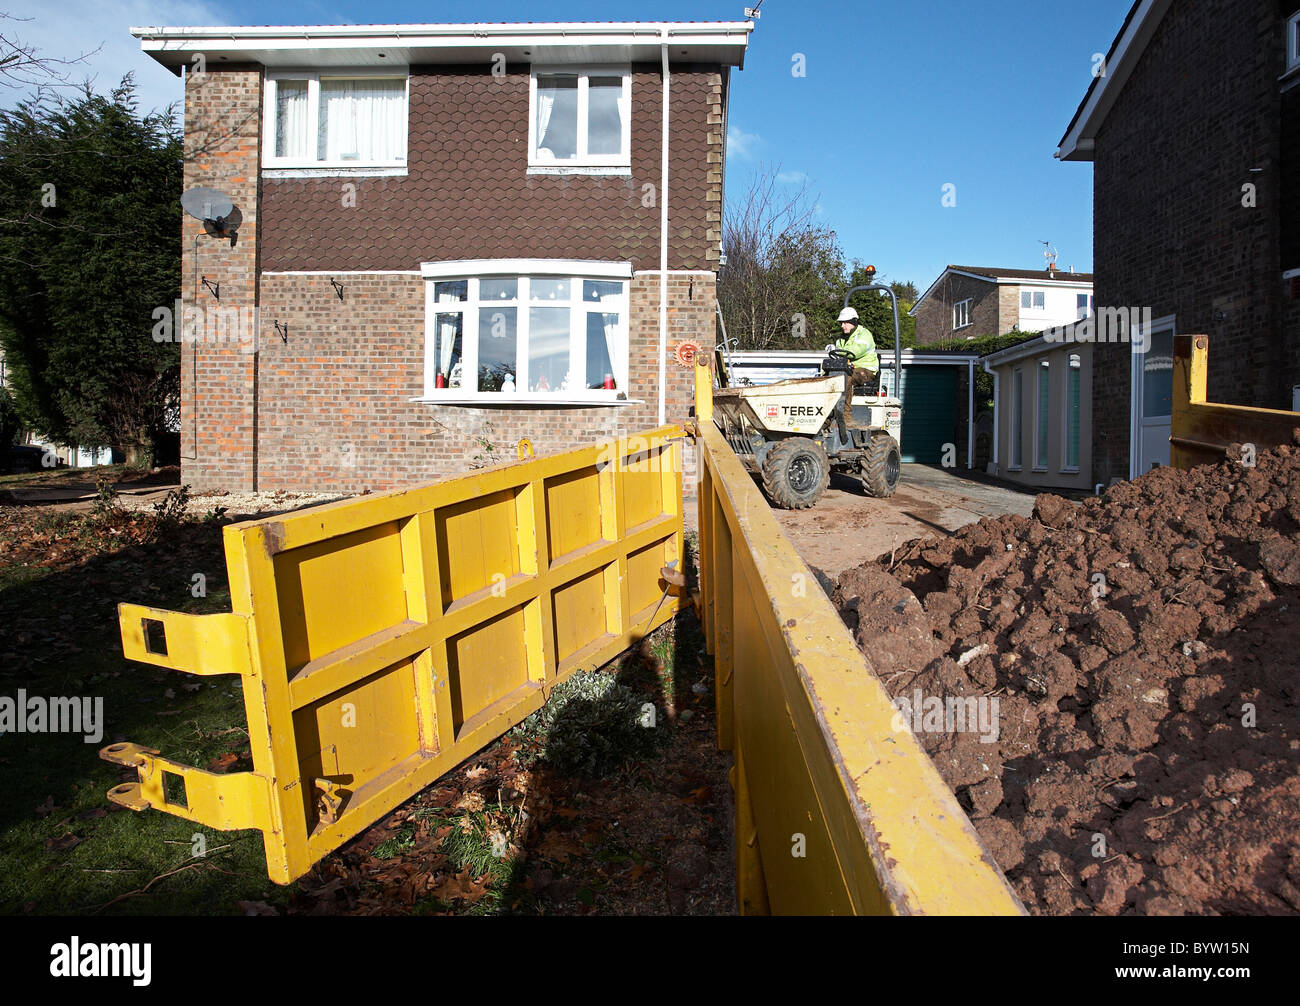 A skip being filled by a dump truck with earth outside a house. - Stock Image